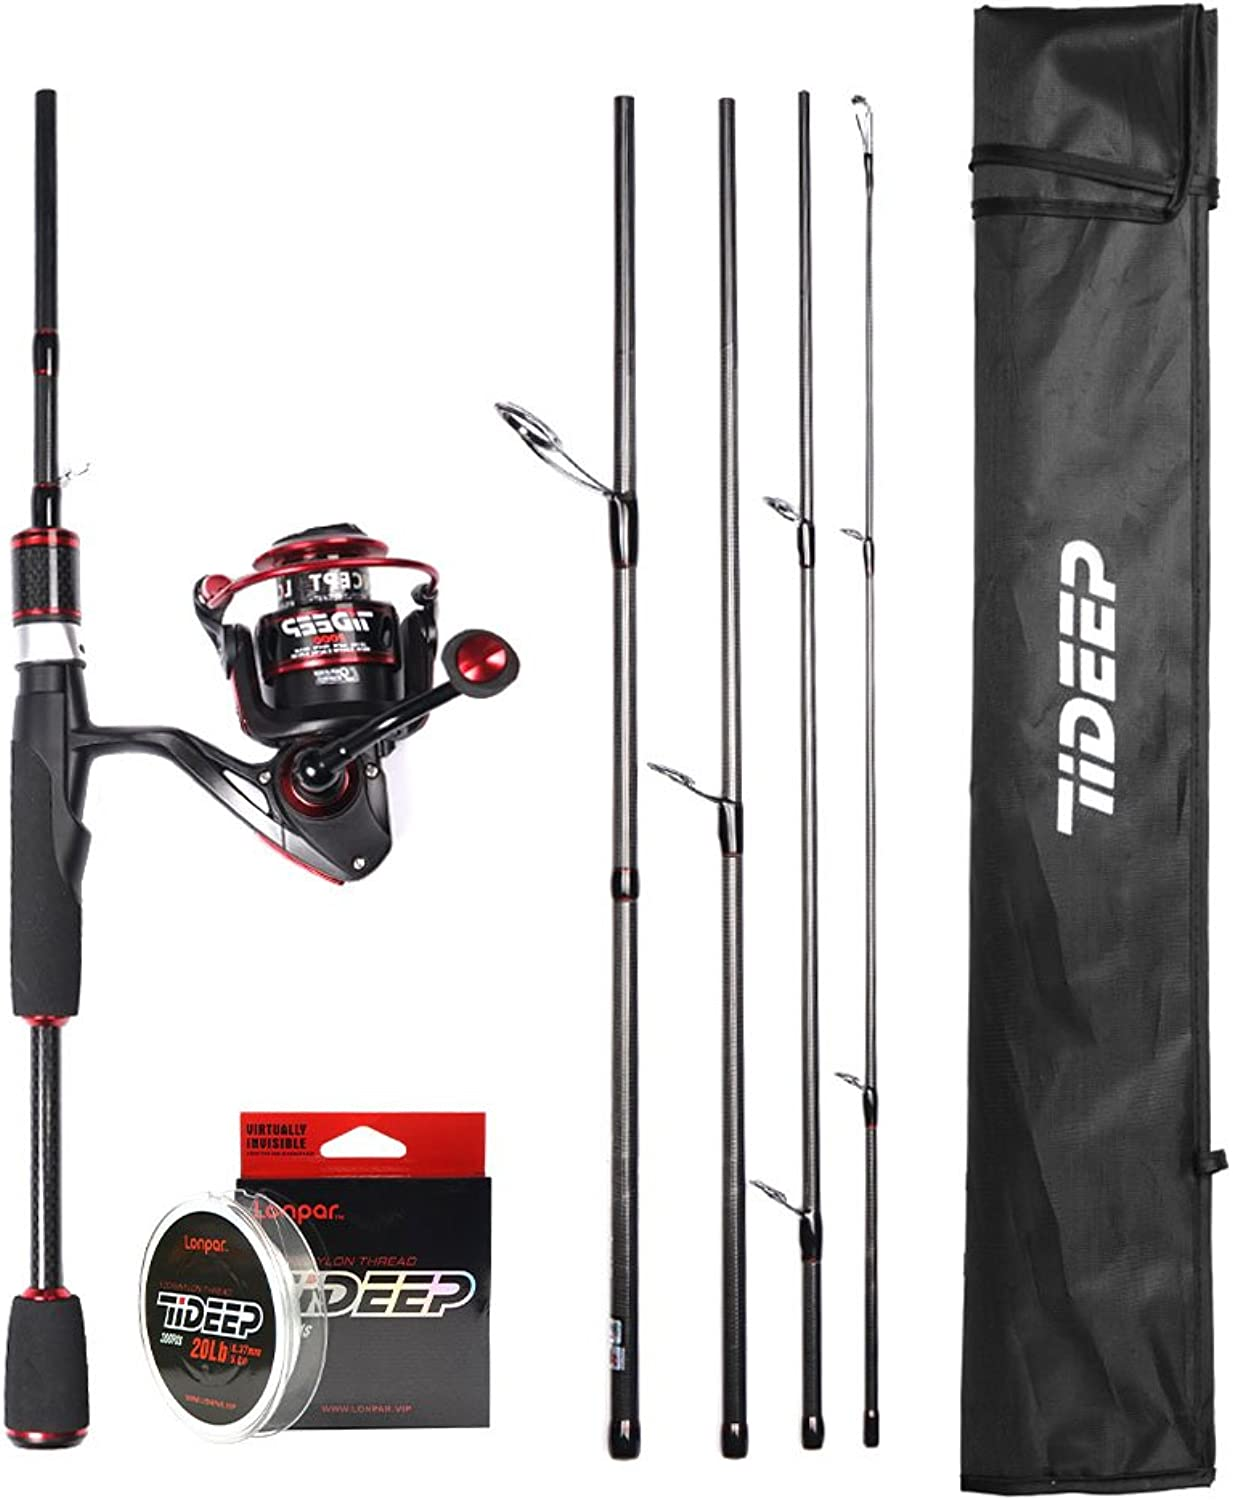 LONPAR Spinning Rod and Reel Combos 24T+30T High Grade Carbon Fiber Blank Rod with 8+4BB Lightweight Smooth Reel Free Nylon Line Saltwater Freshwater Fishing Rod Kit